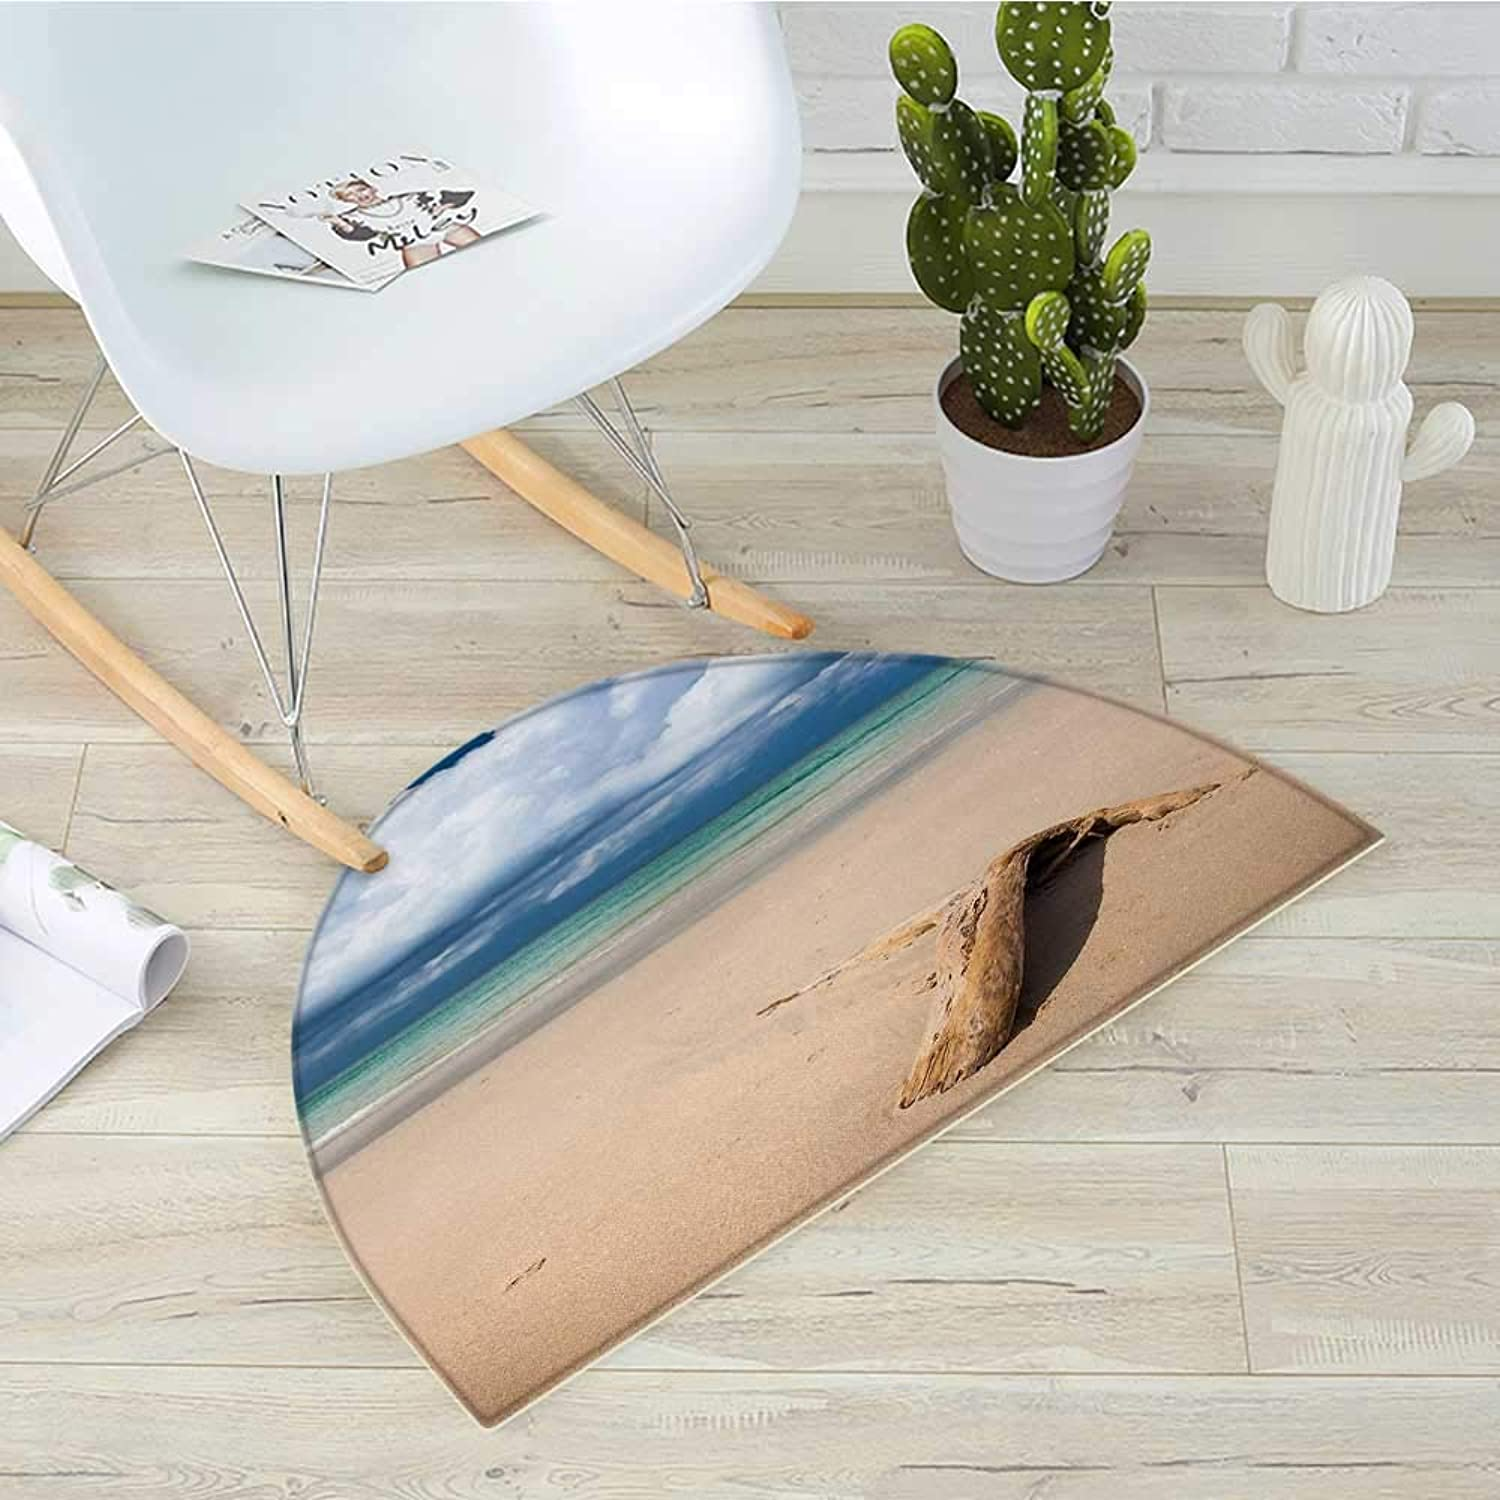 Driftwood Semicircular CushionSea Theme Driftwood on The Sandy Beach and Cloudy Sky Digital Style Print Entry Door Mat H 43.3  xD 64.9  Sand Brown bluee